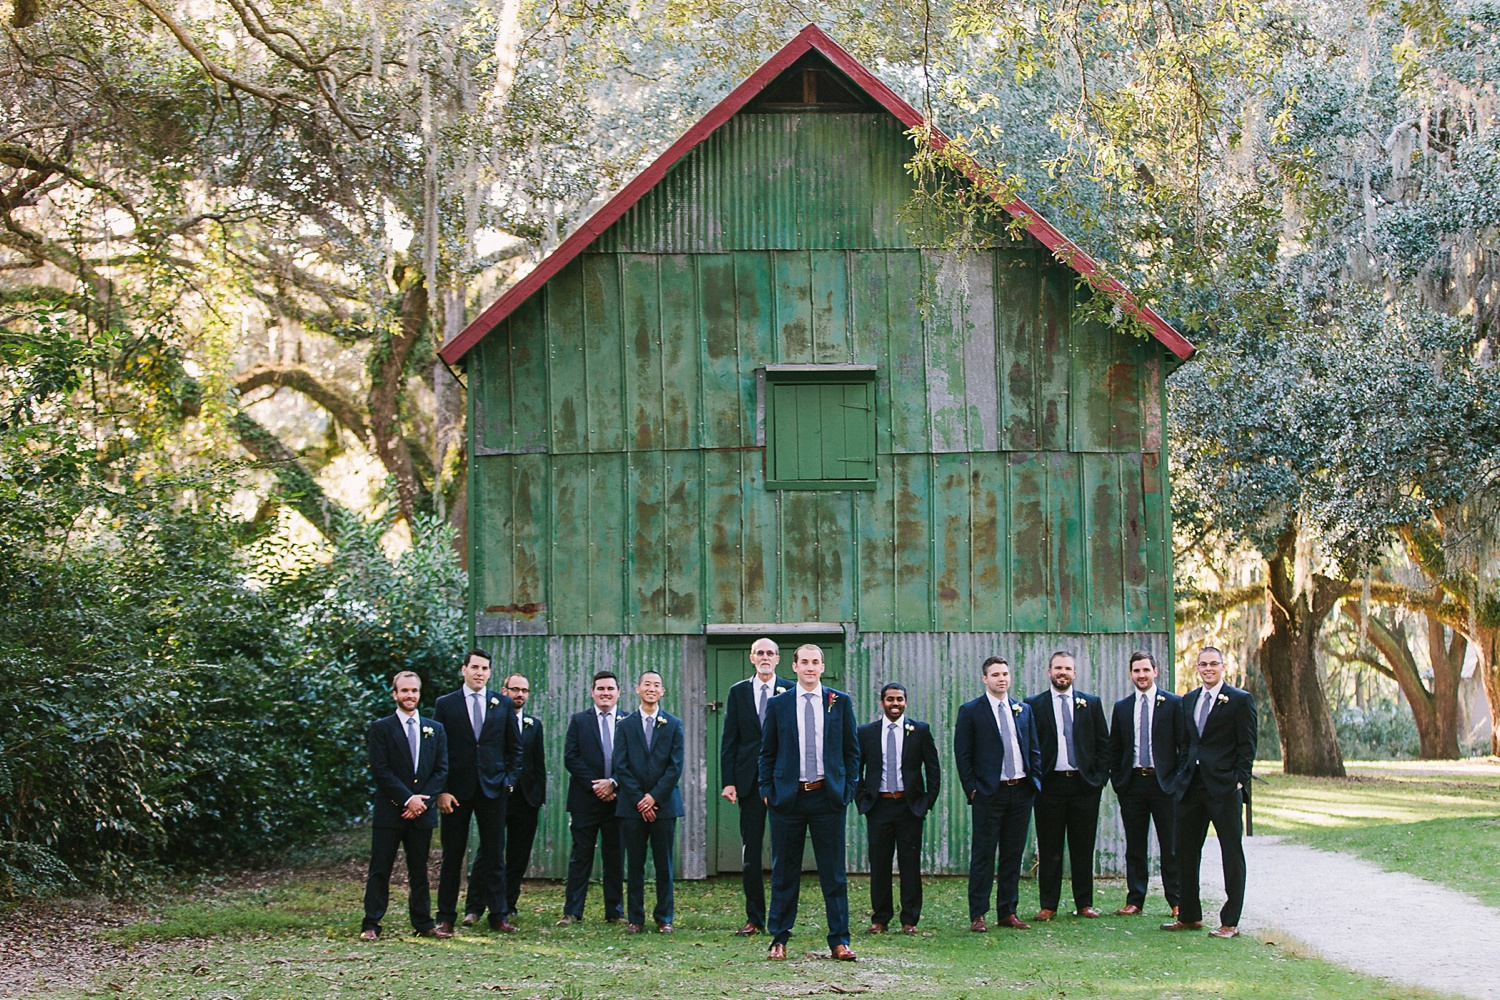 Lindsey_A_Miller_photography_charleston_mcleod_plantation_wedding_row_of_oaks_southern_classic_fall_spanish_moss_historic_home_049.jpg